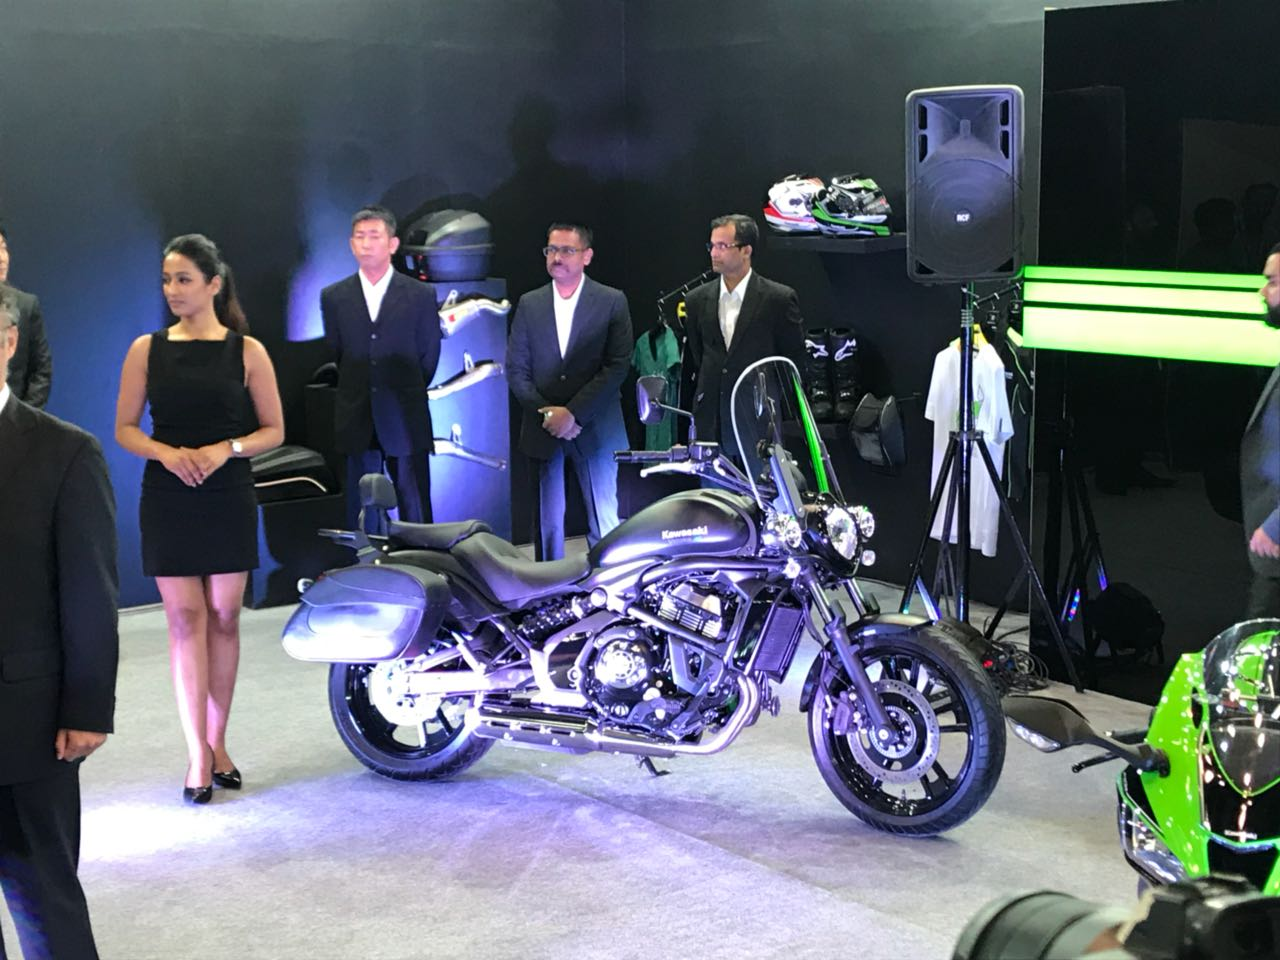 <p>Kawasaki showcases the fully loaded version of its recently launched Vulcan S with panniers and a front screen</p>